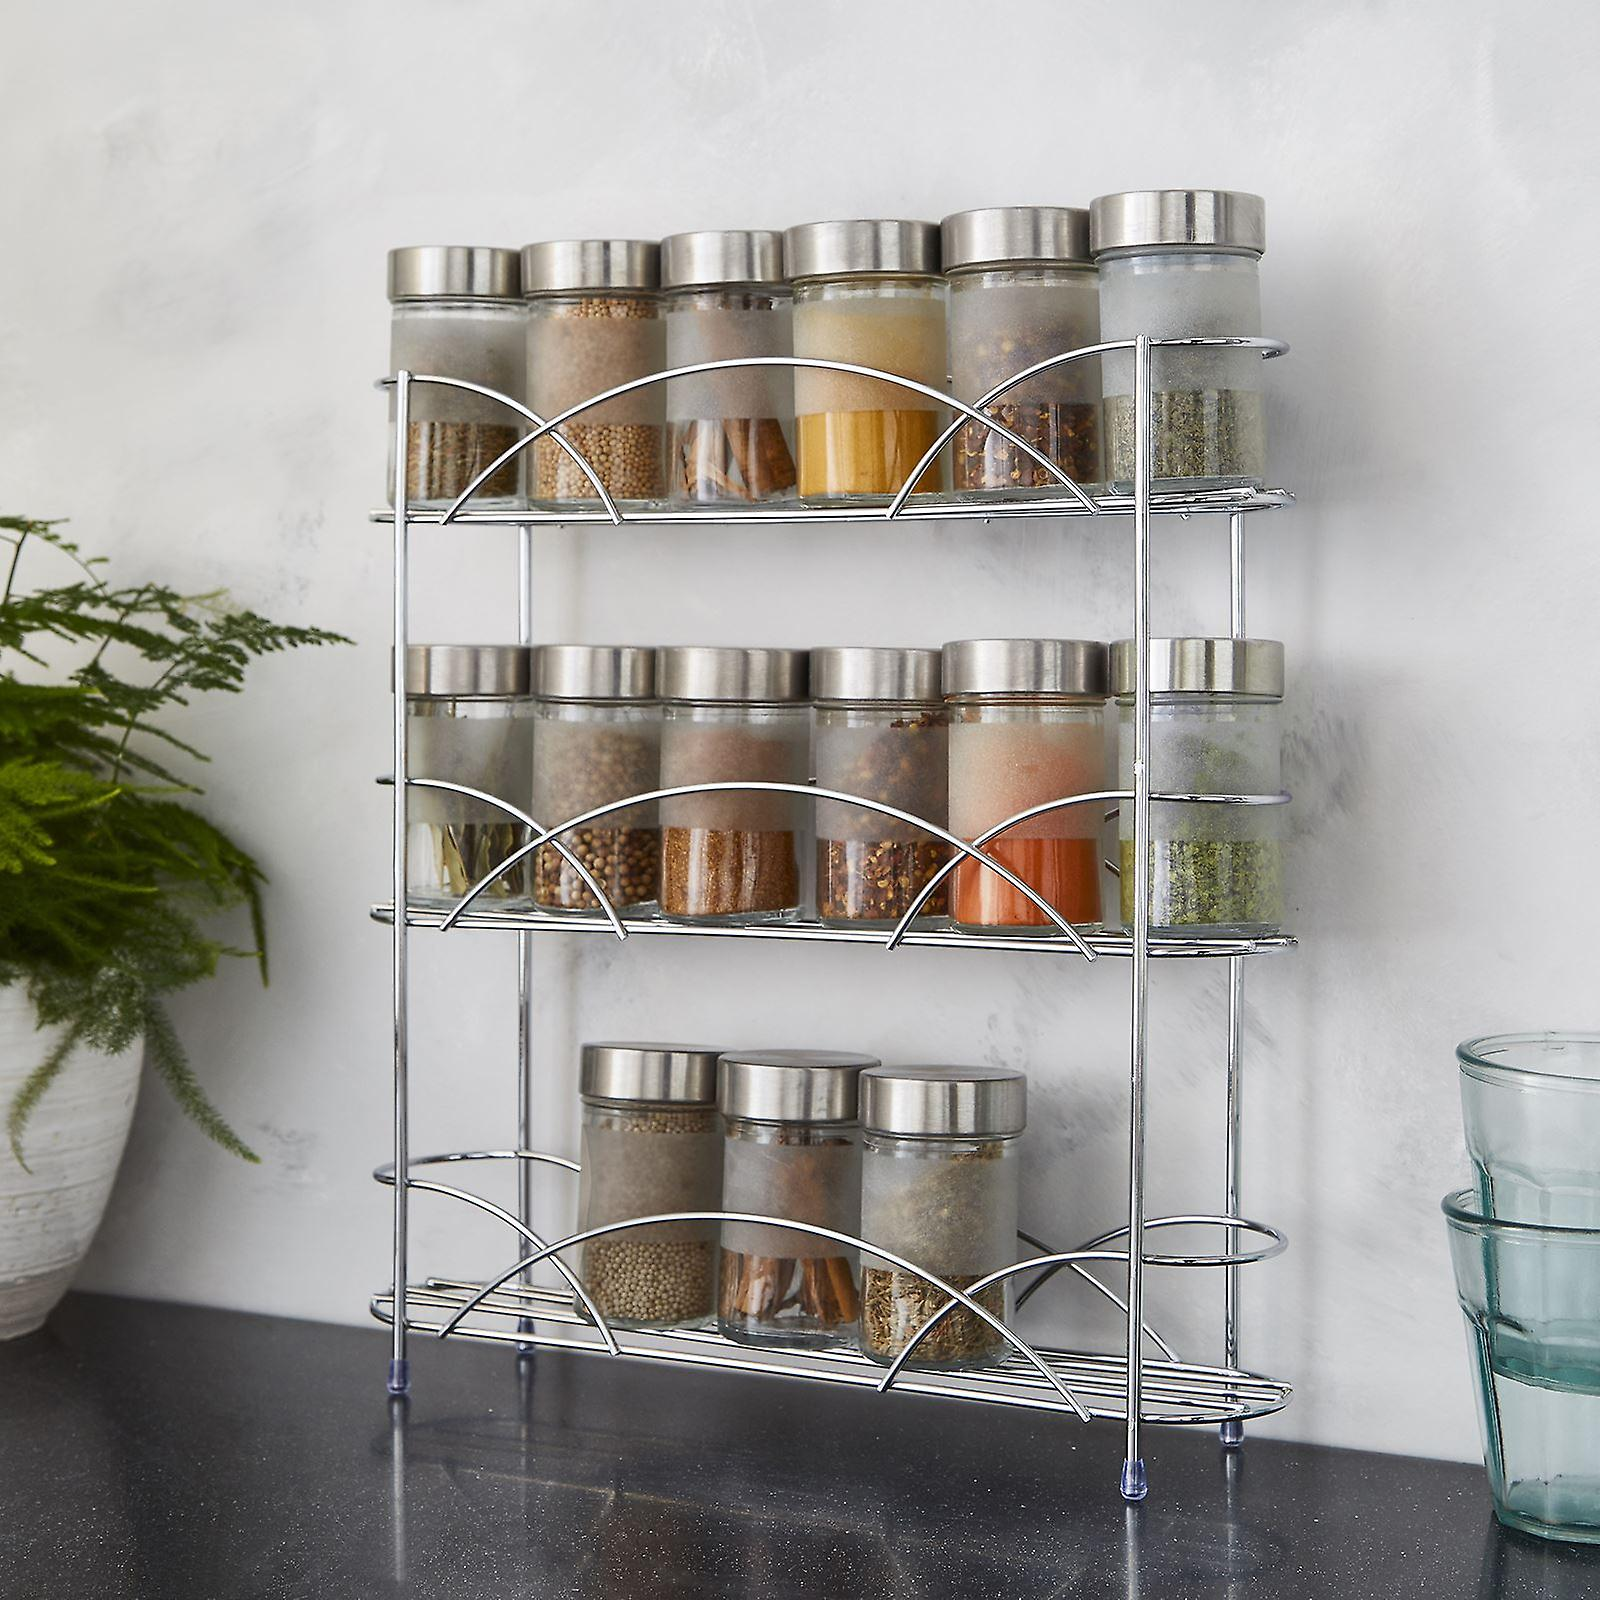 Free Standing Spice Rack in Chrome Plated